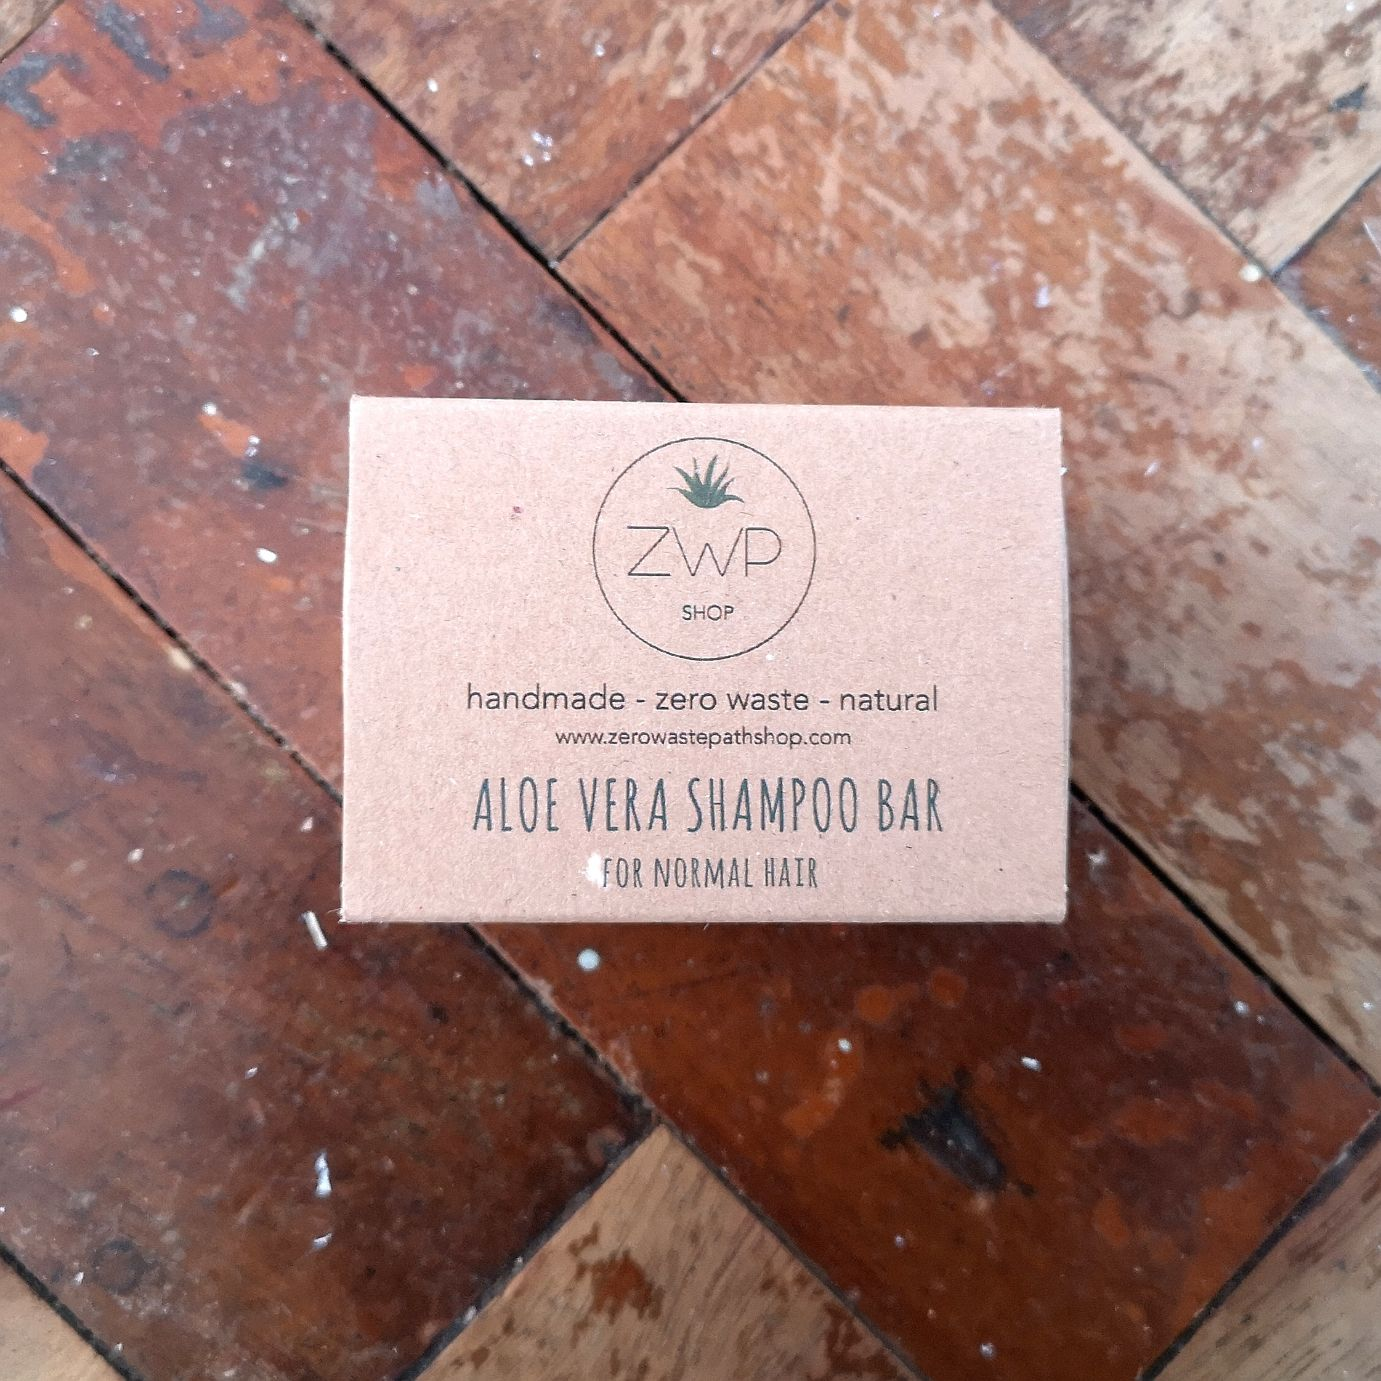 ZWP Aloe Vera Shampoo Bar - for Normal Hair